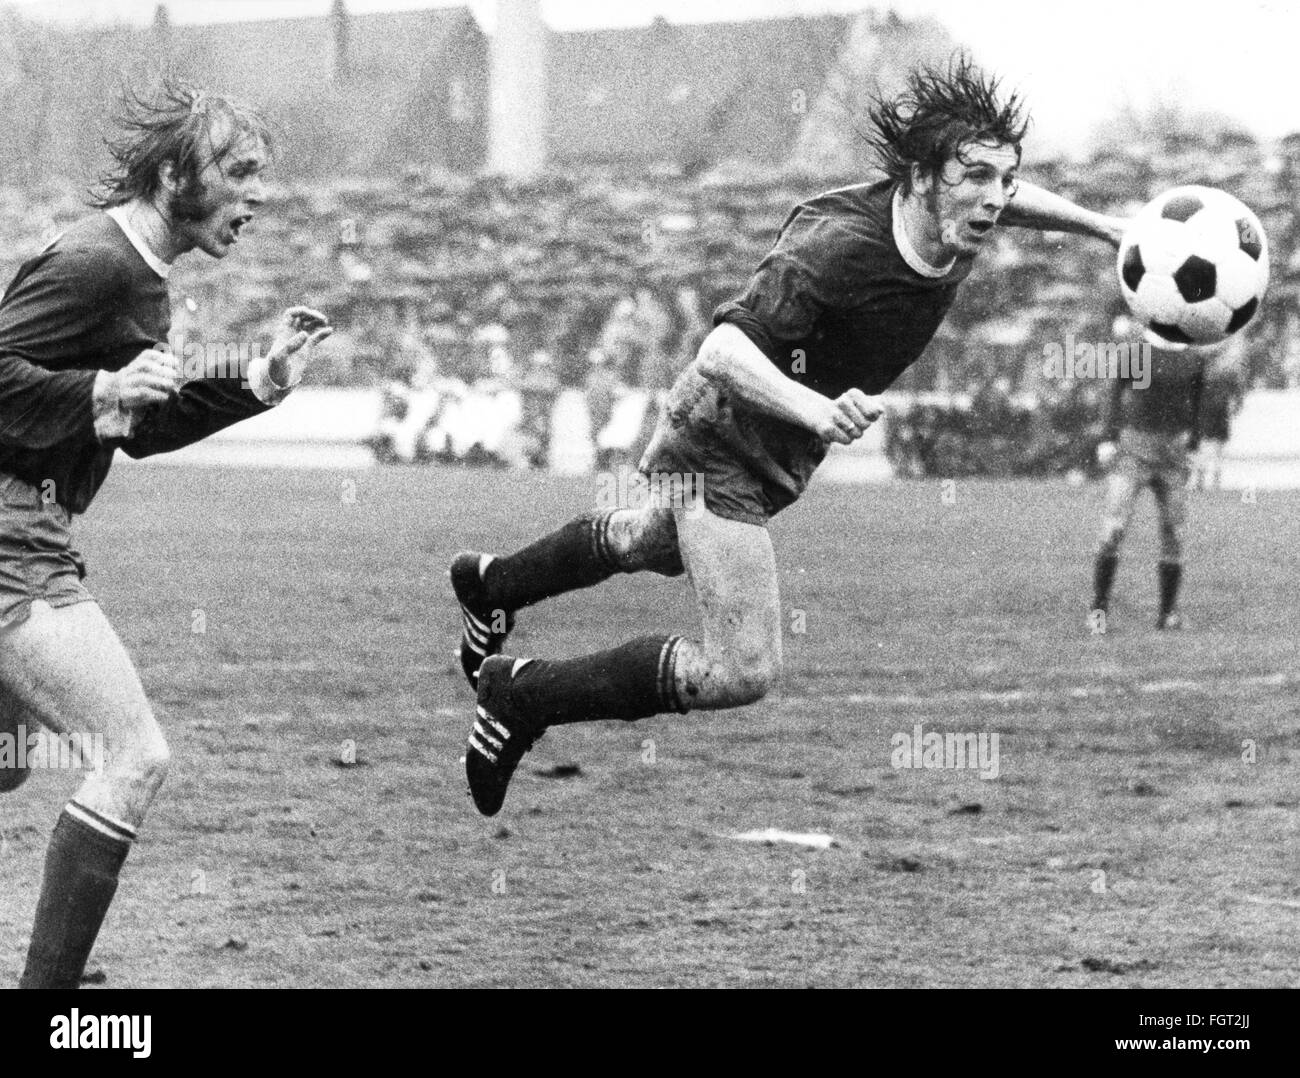 sports, football, Germany, national league, season 1971 / 1972, 28th match day, Rot-Weiss Oberhausen versus FC Schalke - Stock Image